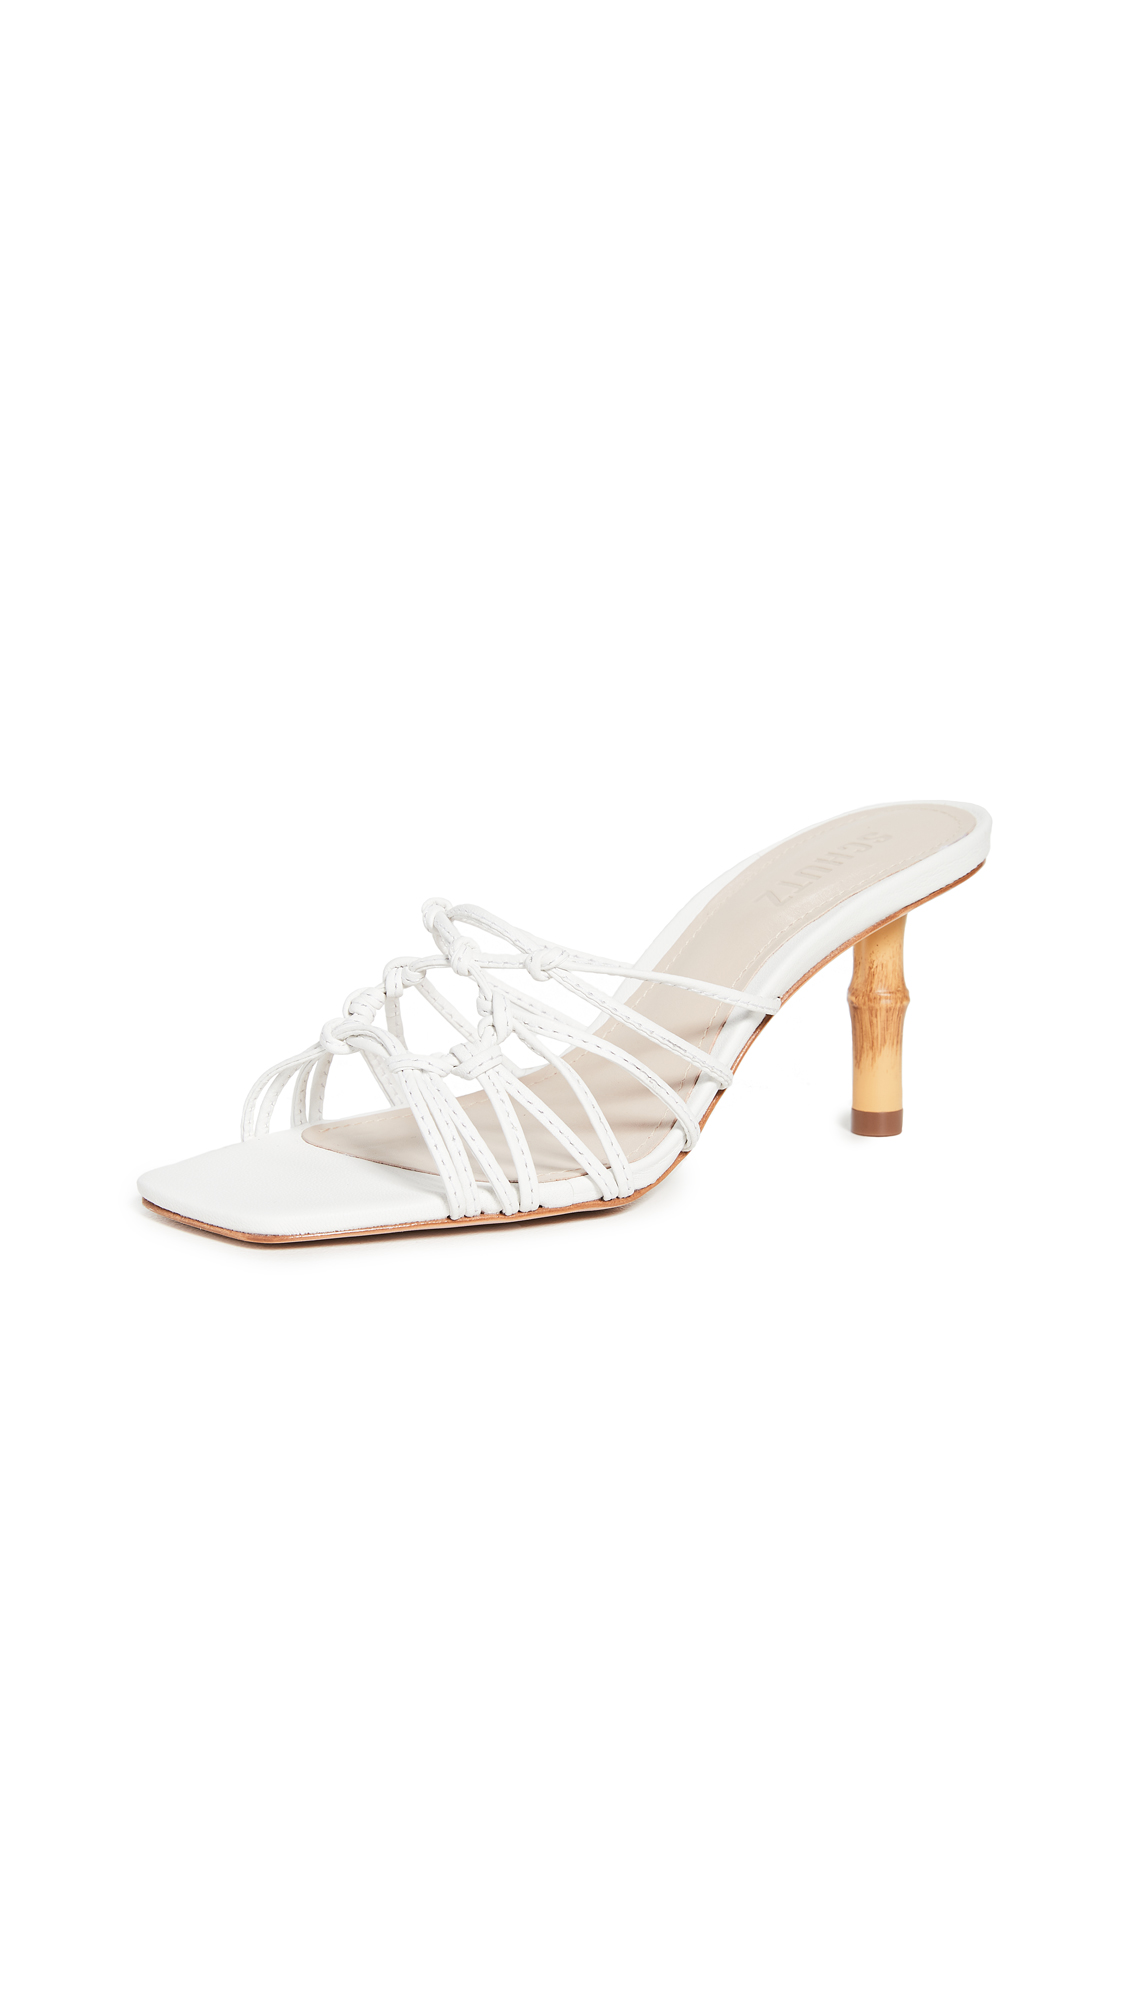 Schutz Dileni Mules - 30% Off Sale